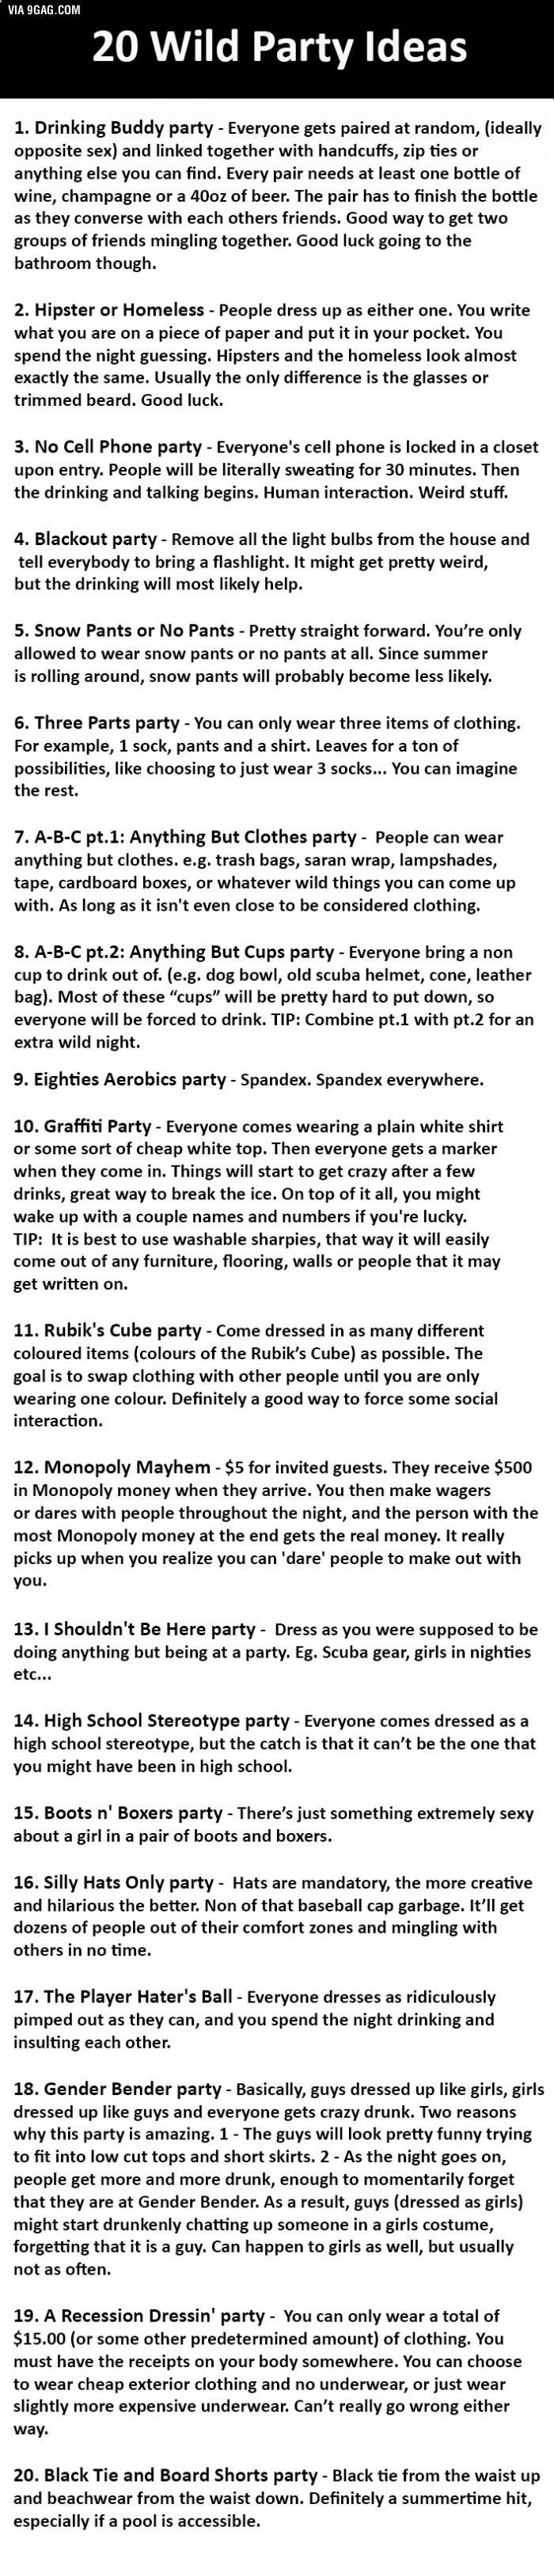 Best Ideas Ever For Party minus the drinking, I may do this for a high school sponsored party. Well, maybe.